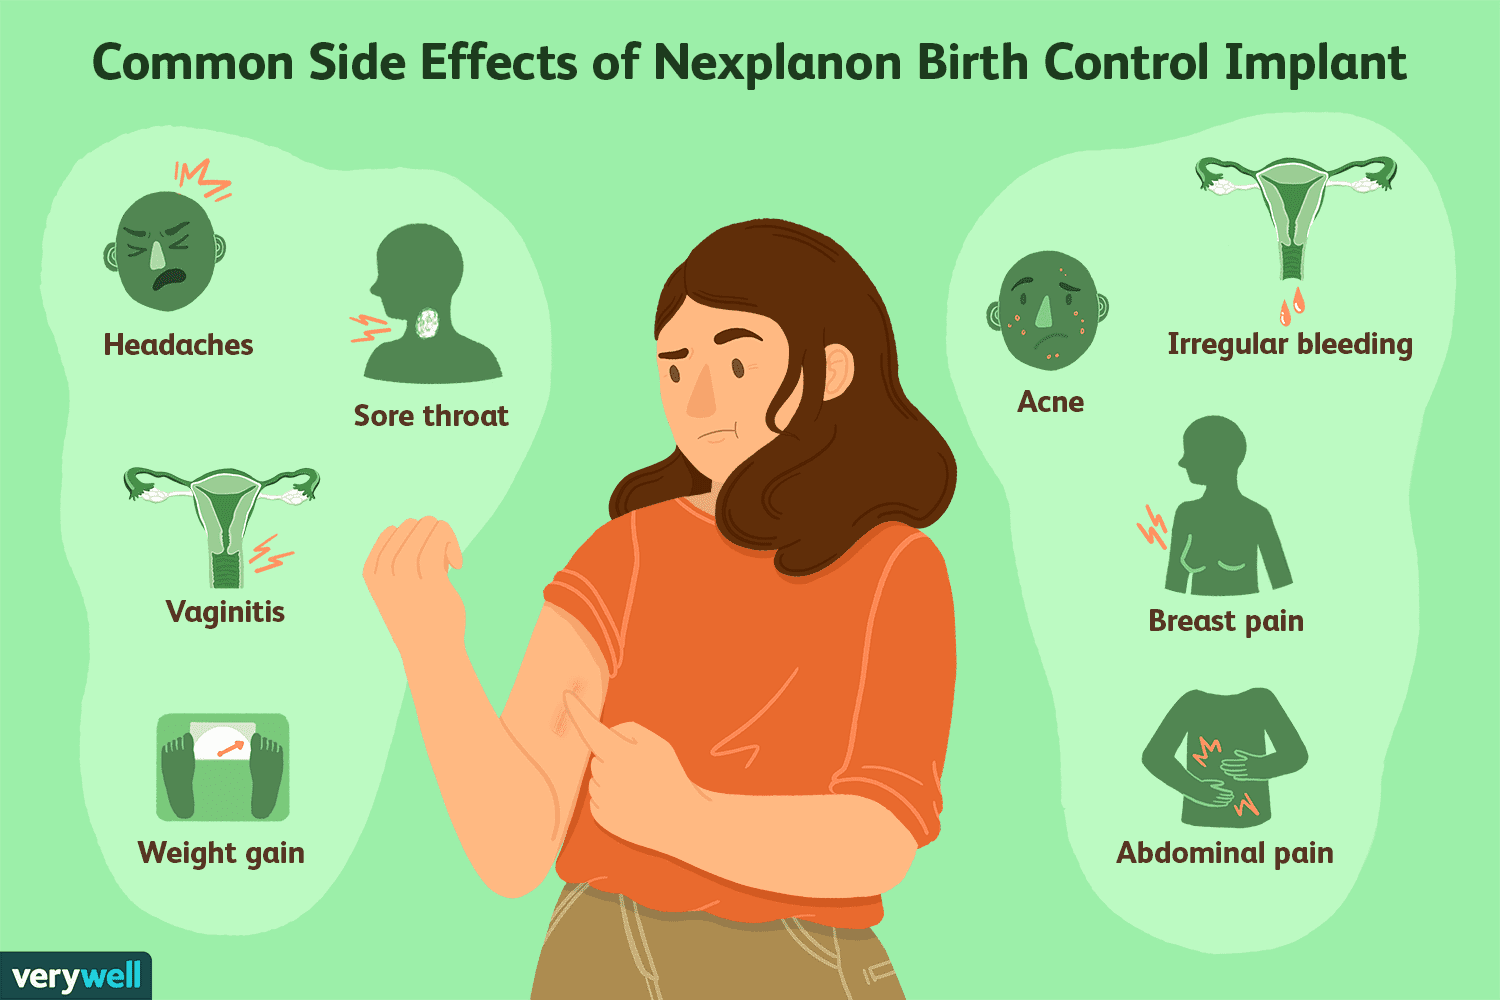 Nexplanon: What You Should Know About the Birth Control Implant